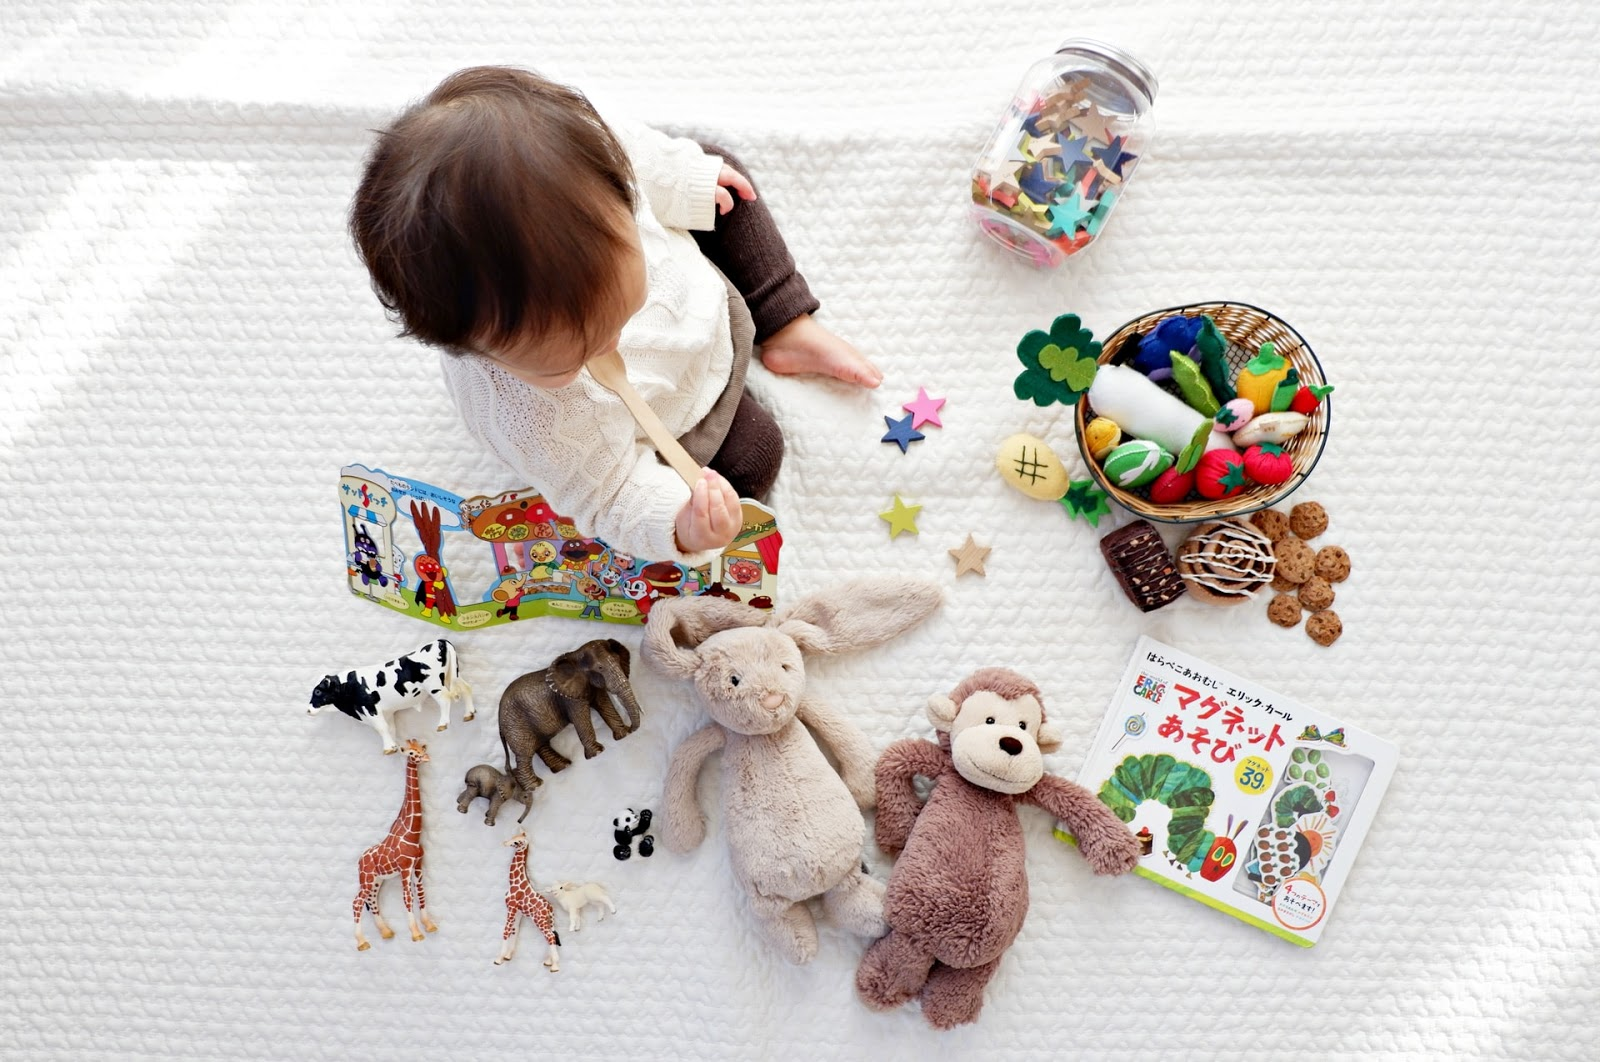 aerial view of child playing with toys